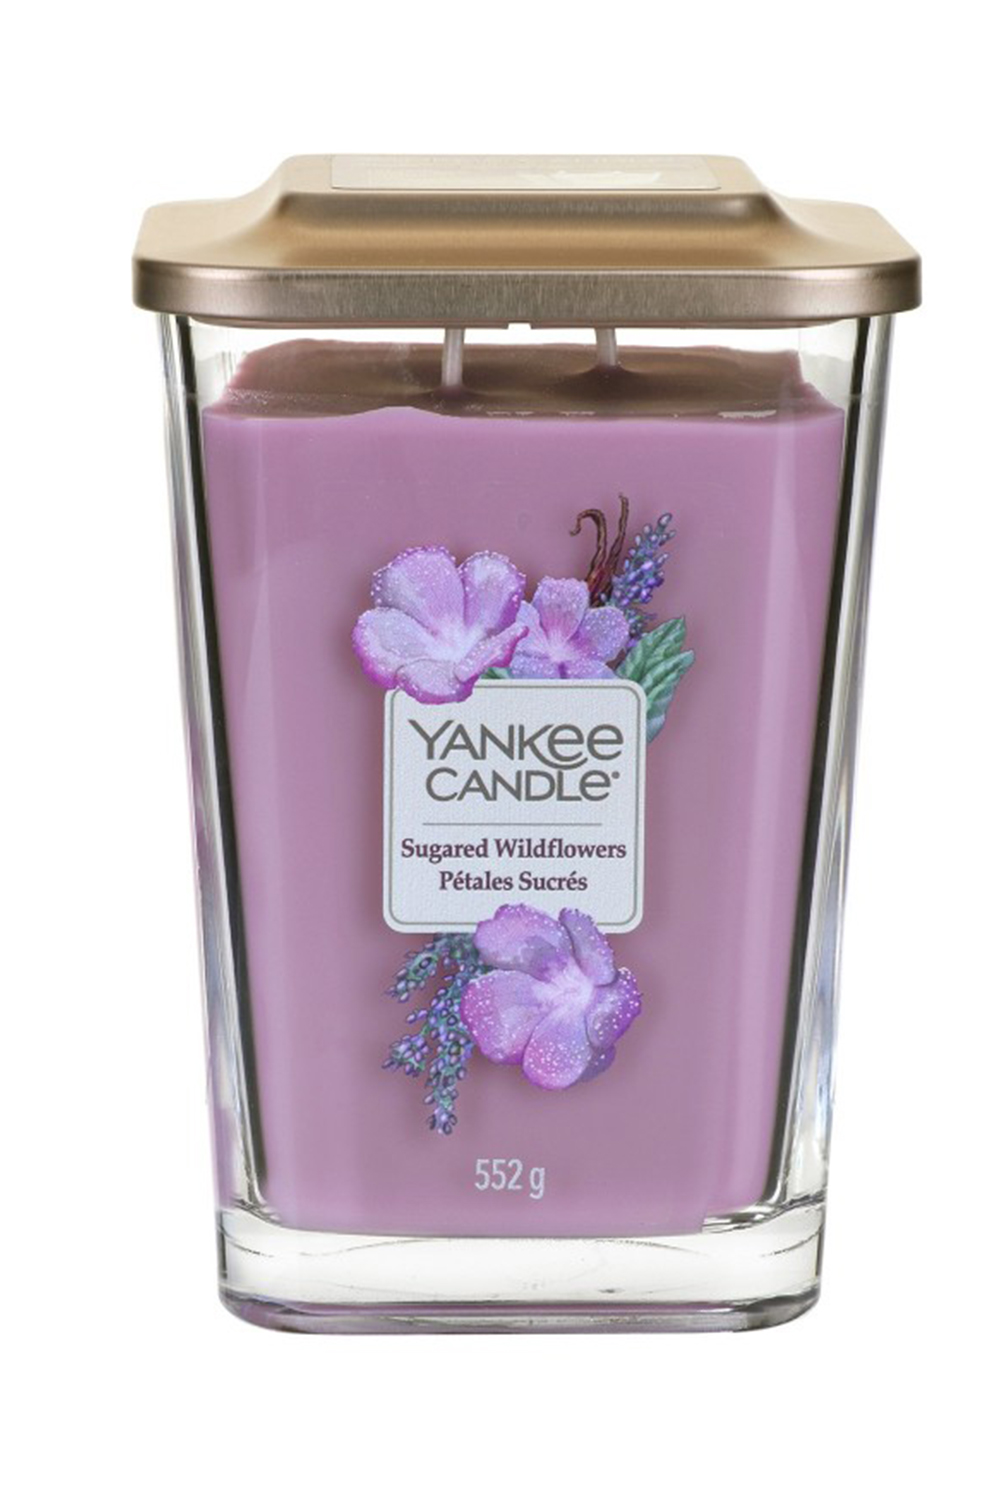 Yankee Candle ароматна свещ Elevation Sugared Wildflowers квадратни големи 2 фитила